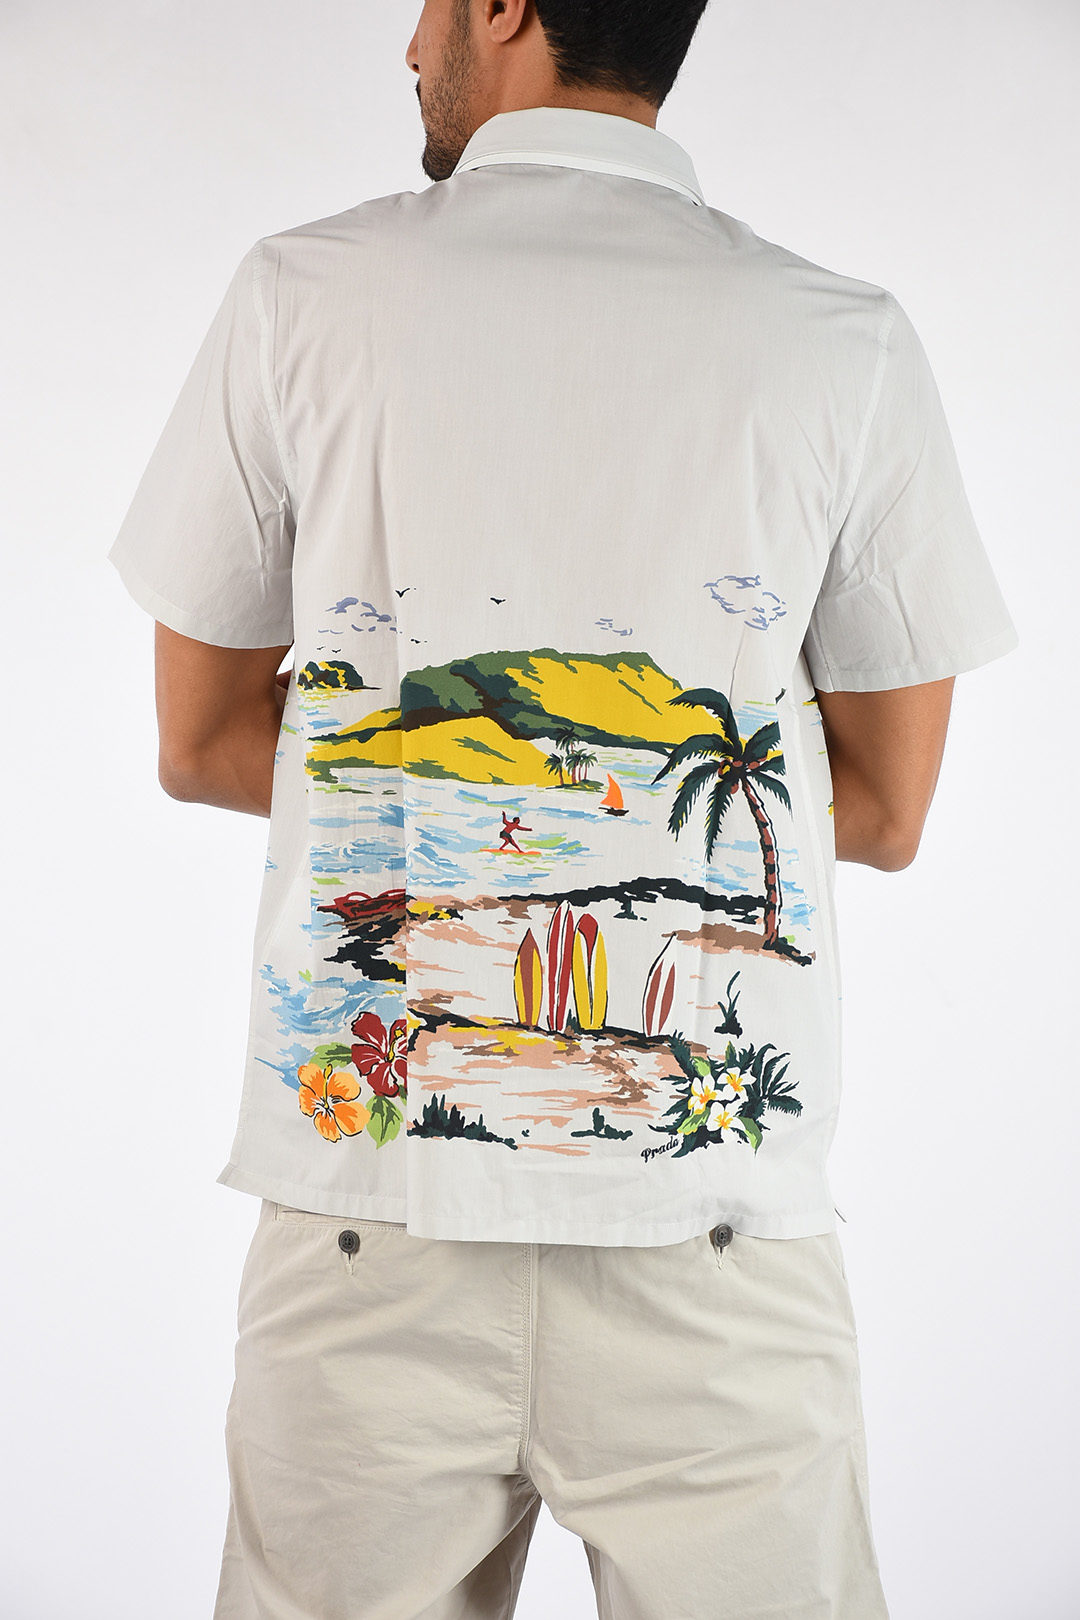 huge selection of d809f deff7 Camicia Stampa Hawaii beach